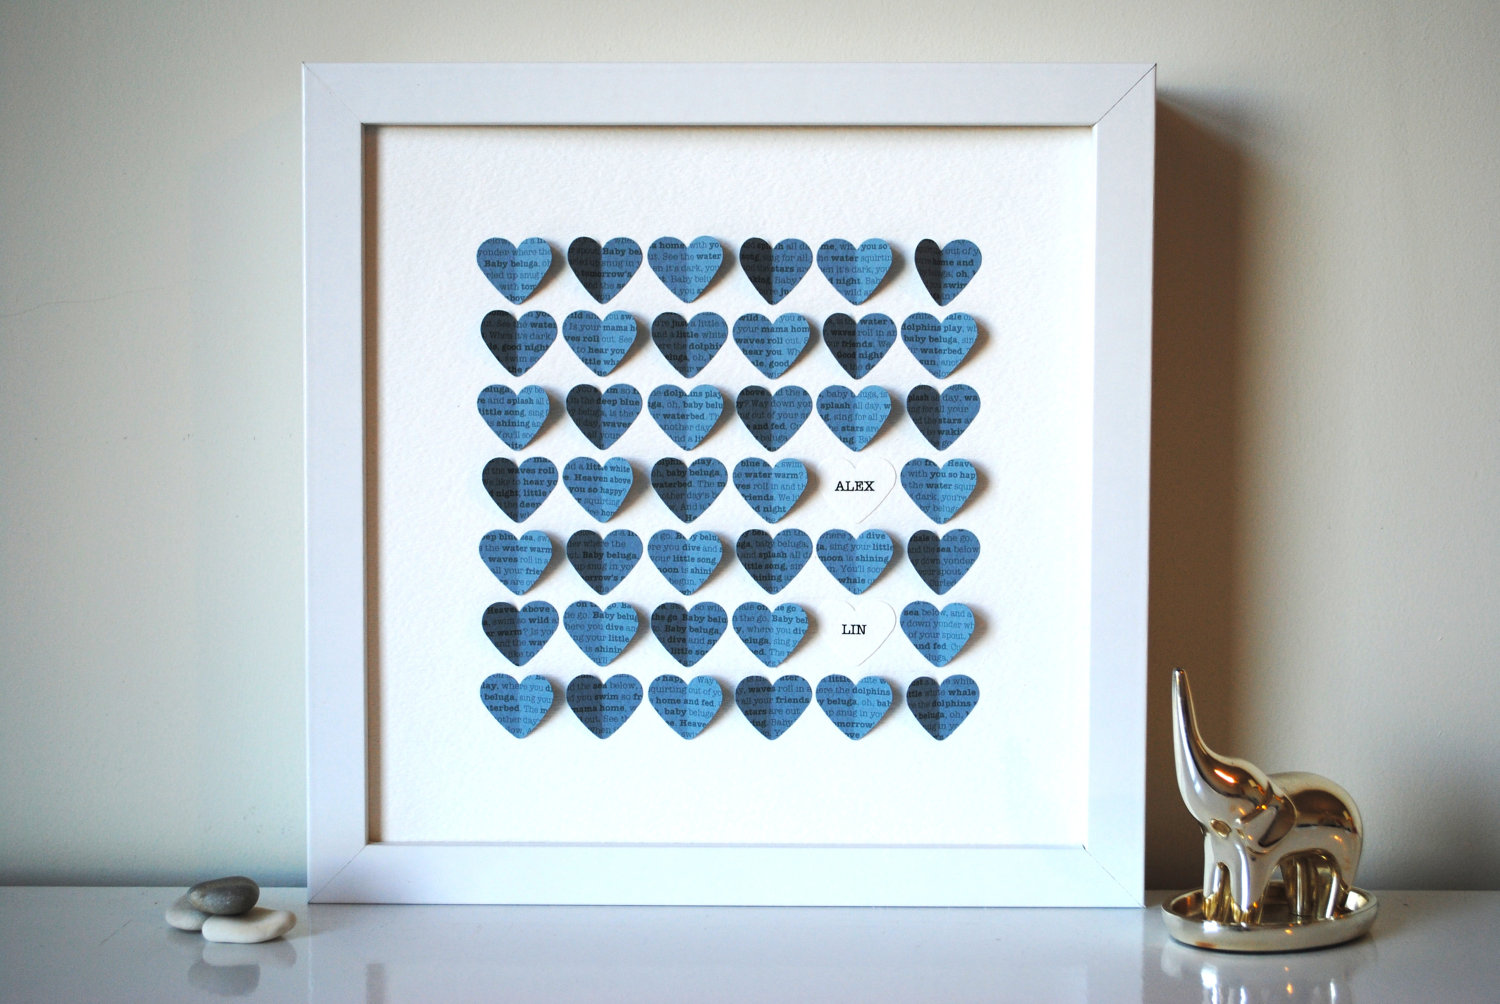 heart shadow box keepsake frame - blue hearts